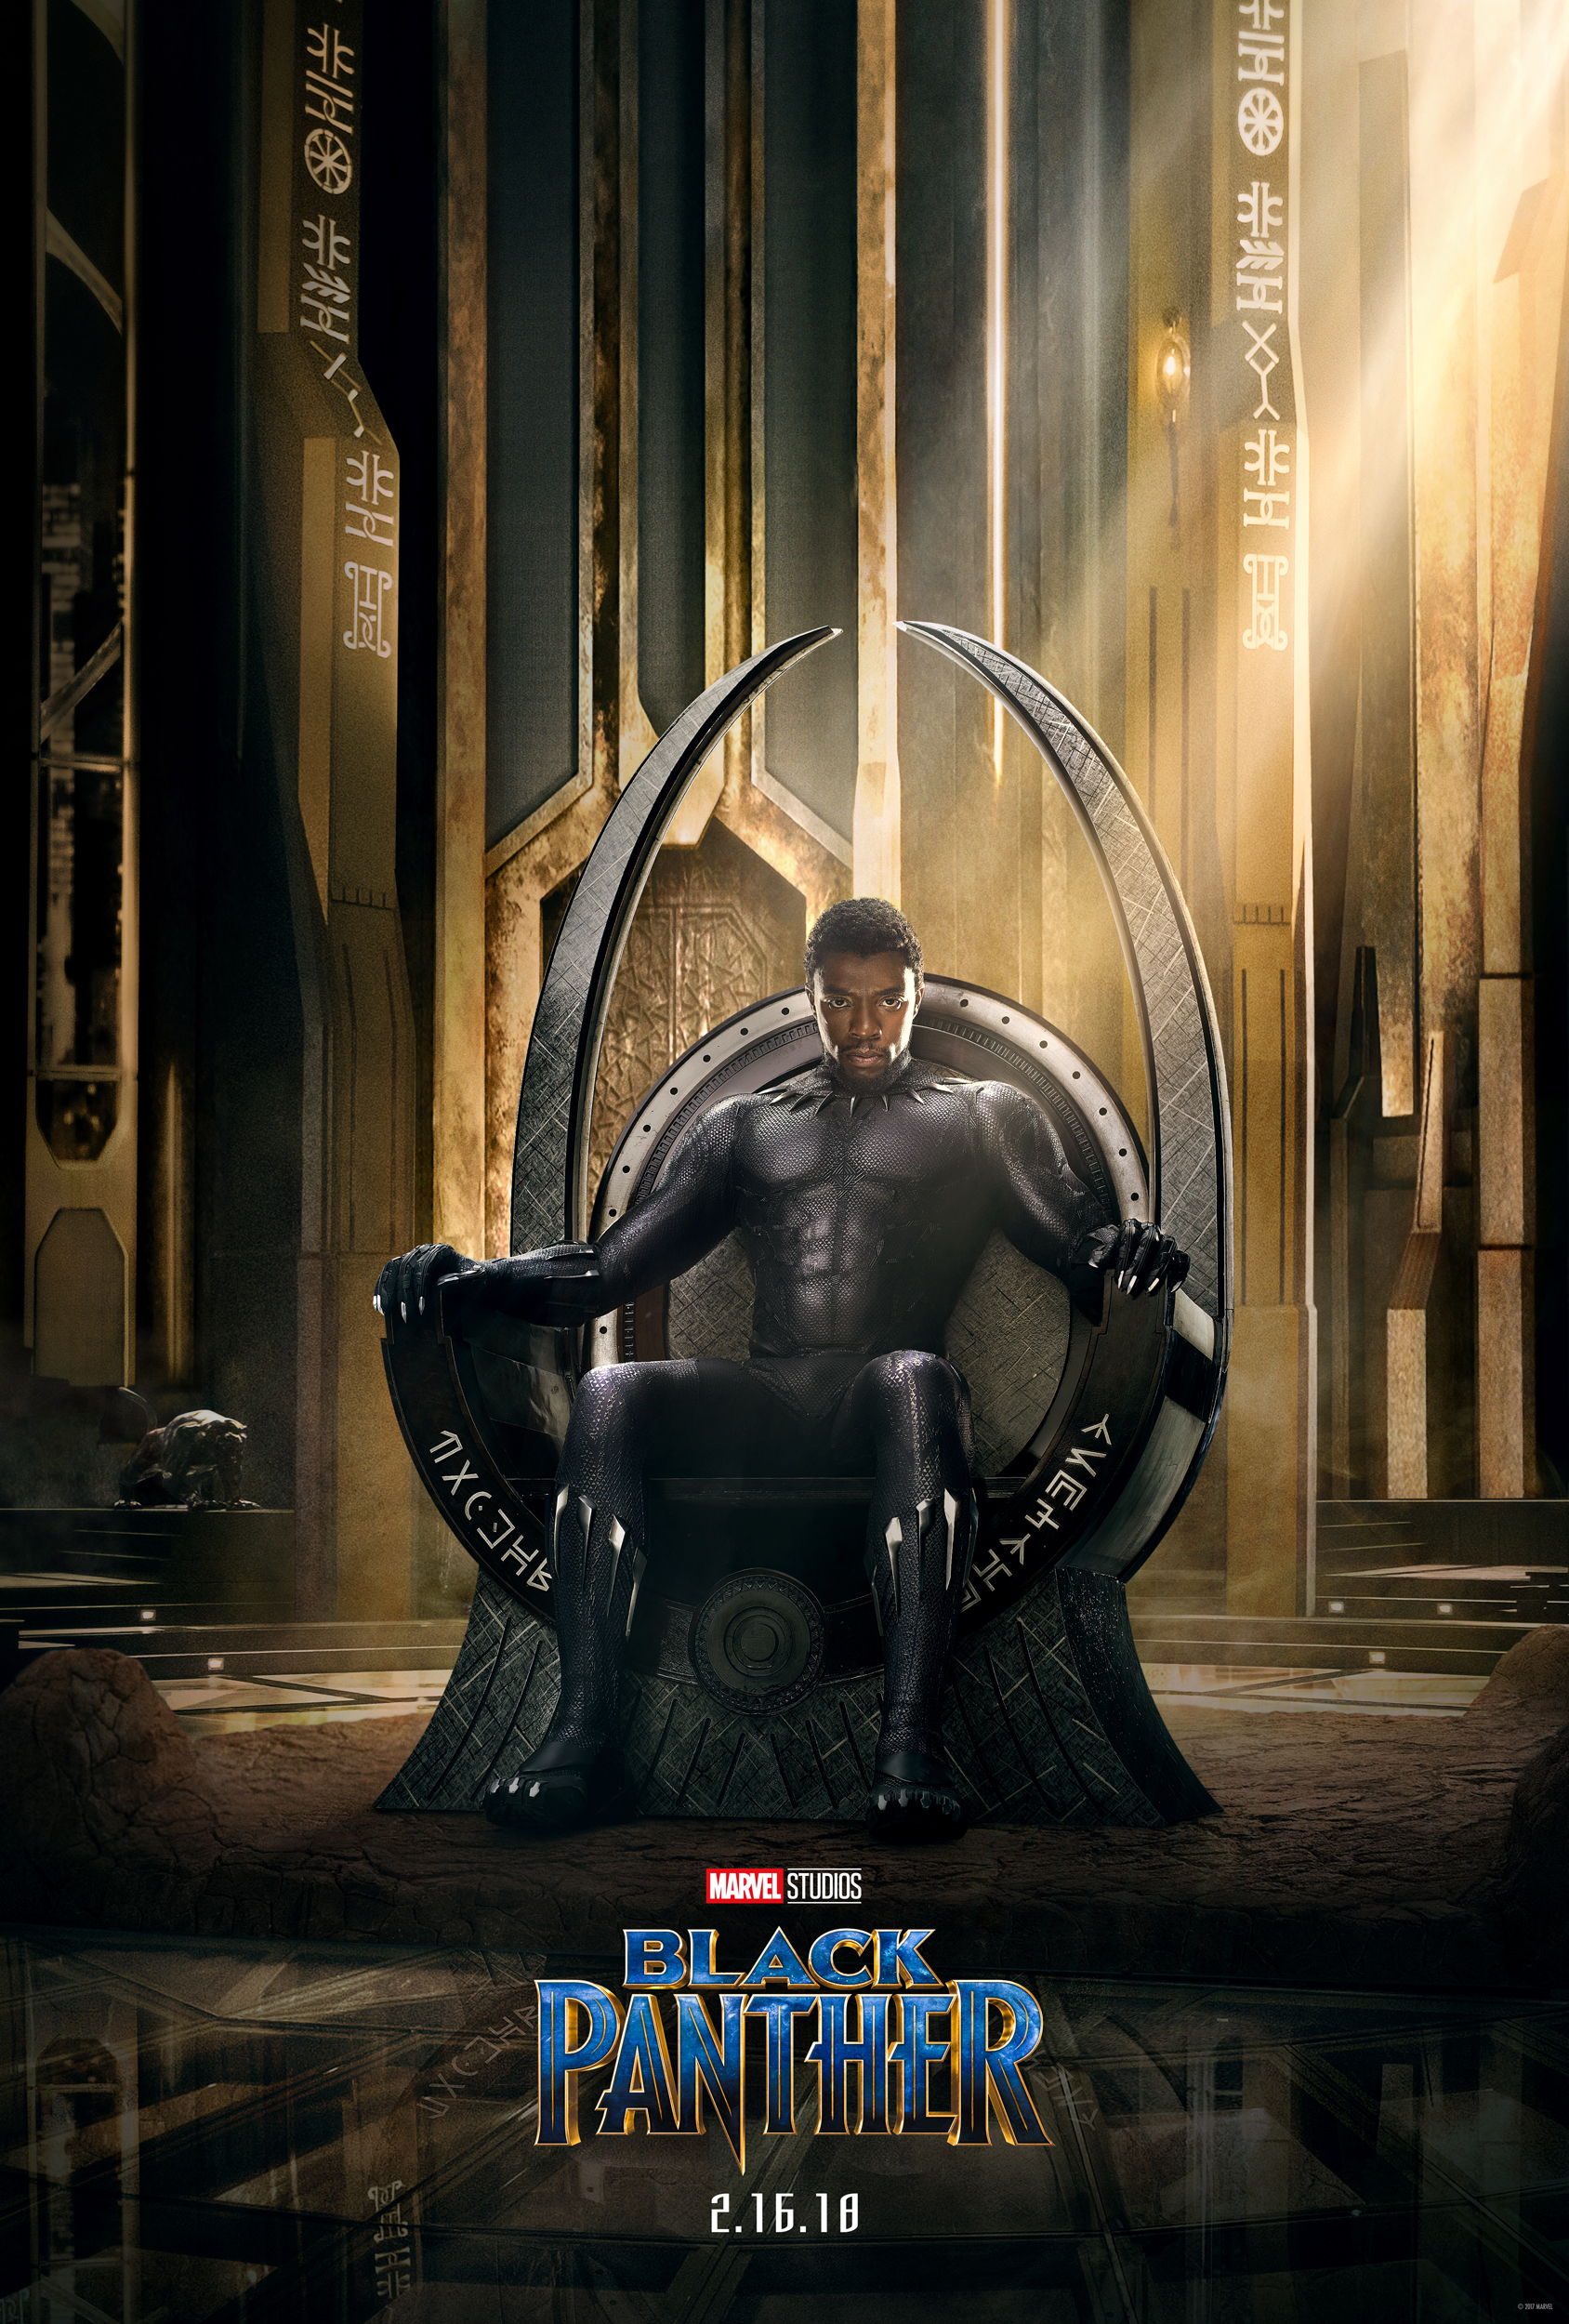 Marvel Studios' BLACK PANTHER - Teaser Trailer & Poster Now Available